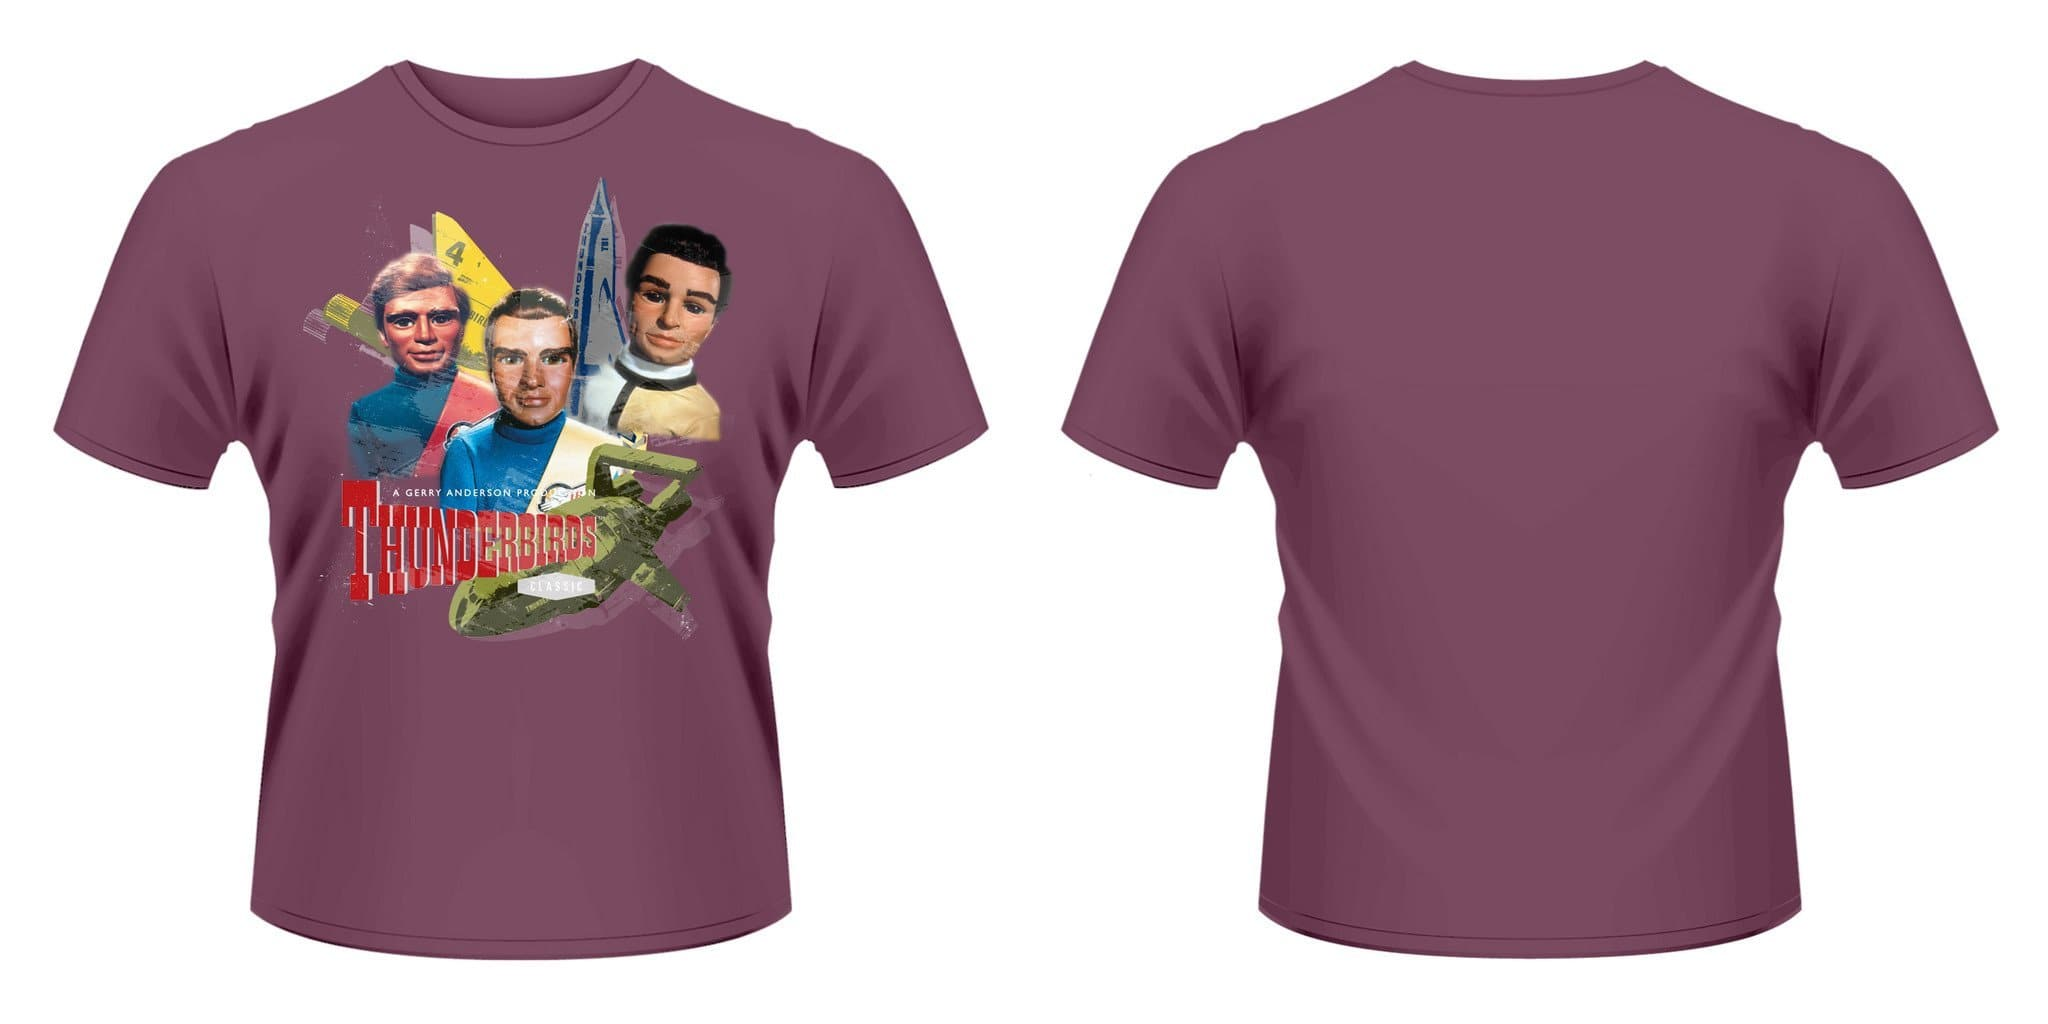 Tracy Brothers - Thunderbirds T-shirt - The Gerry Anderson Store